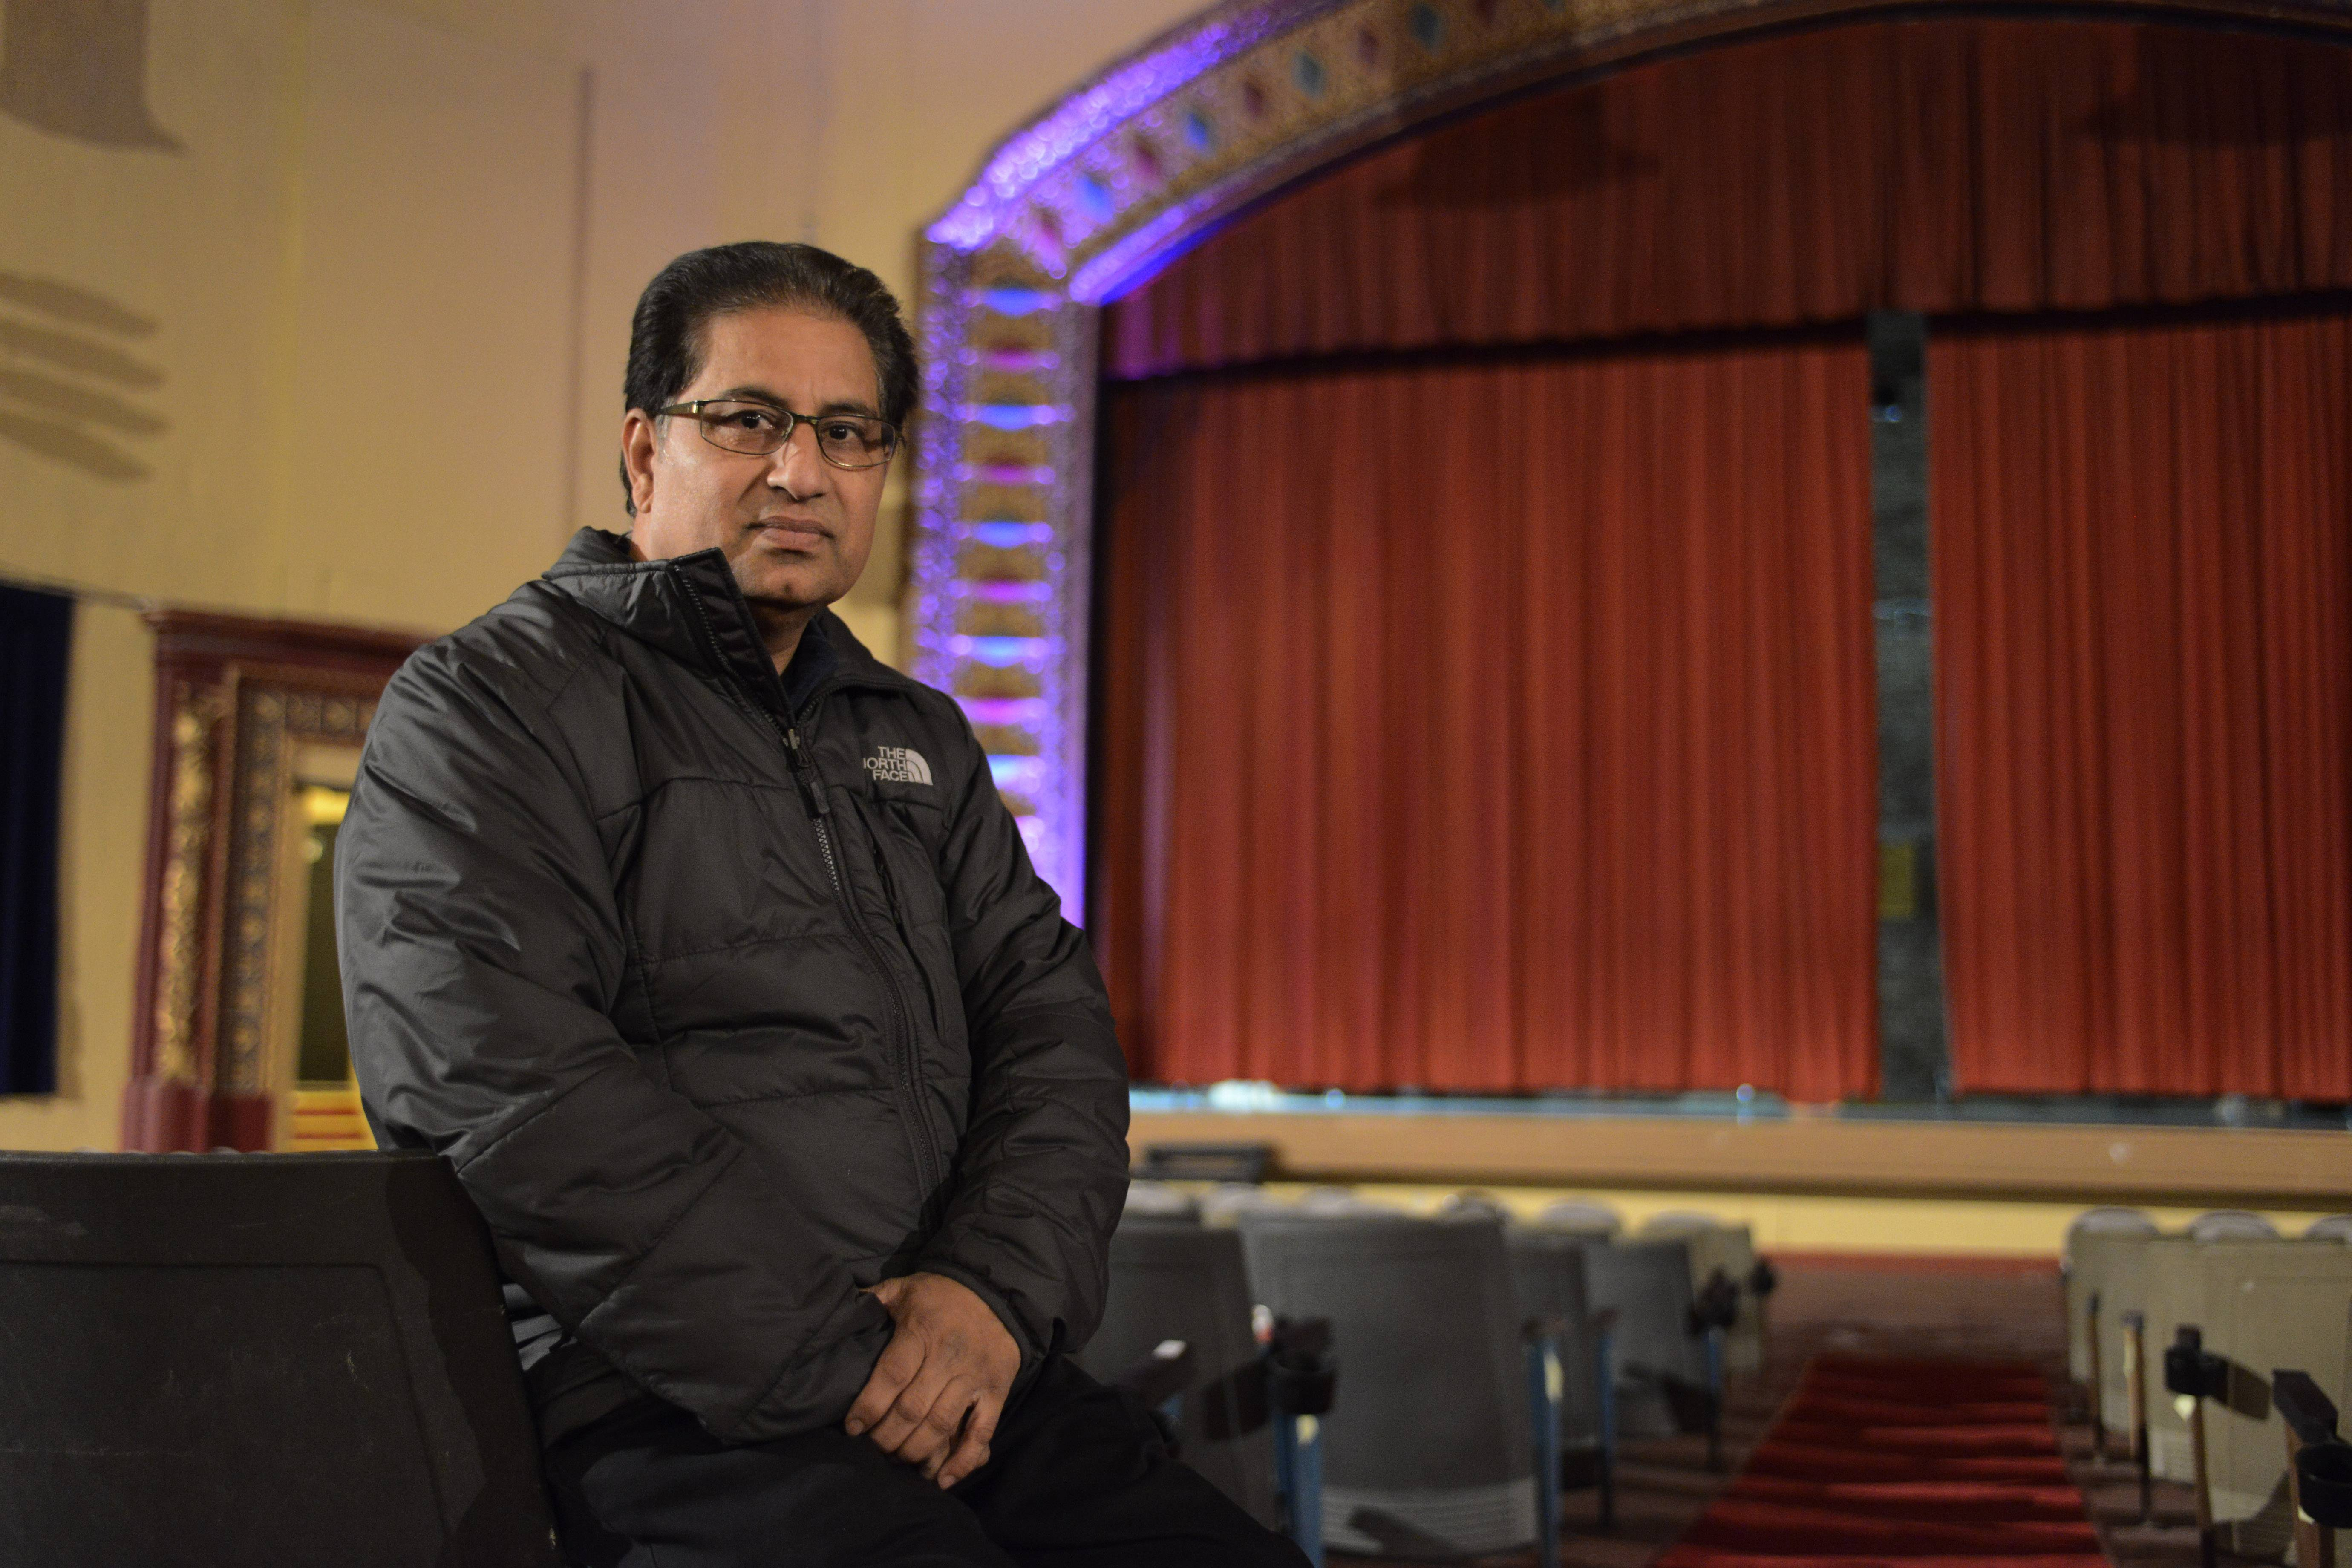 Des Plaines Theatre owner Dhitu Bhagwakar hopes to reopen the historic venue, but first he wants financial assistance from the city.